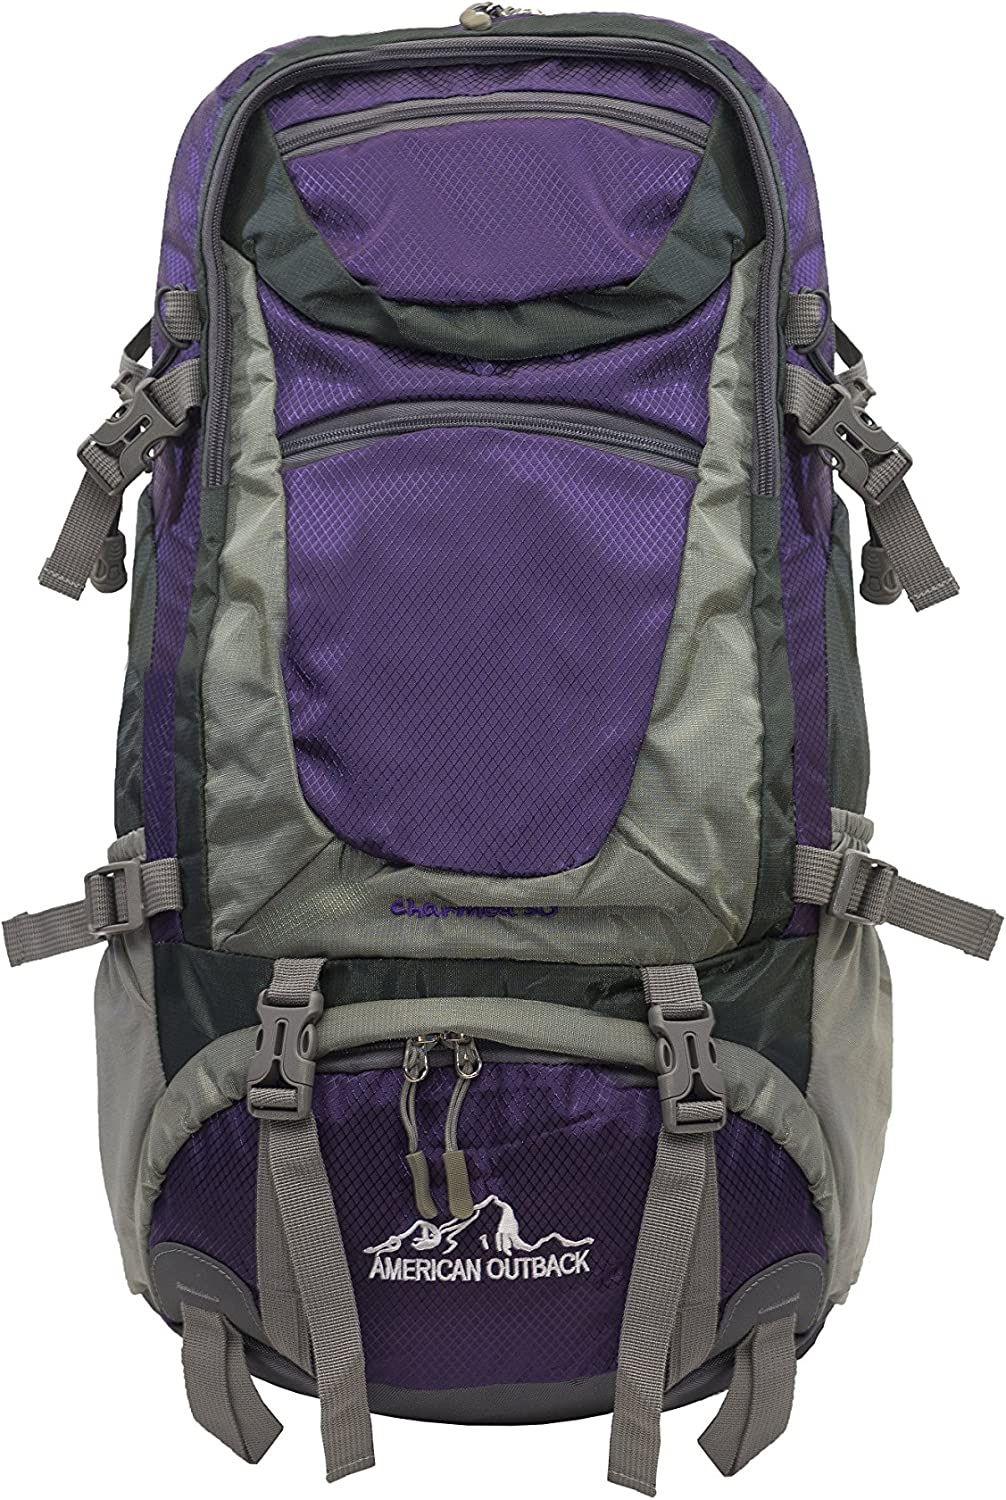 American Outback Fuji Internal Frame Hiking Backpack